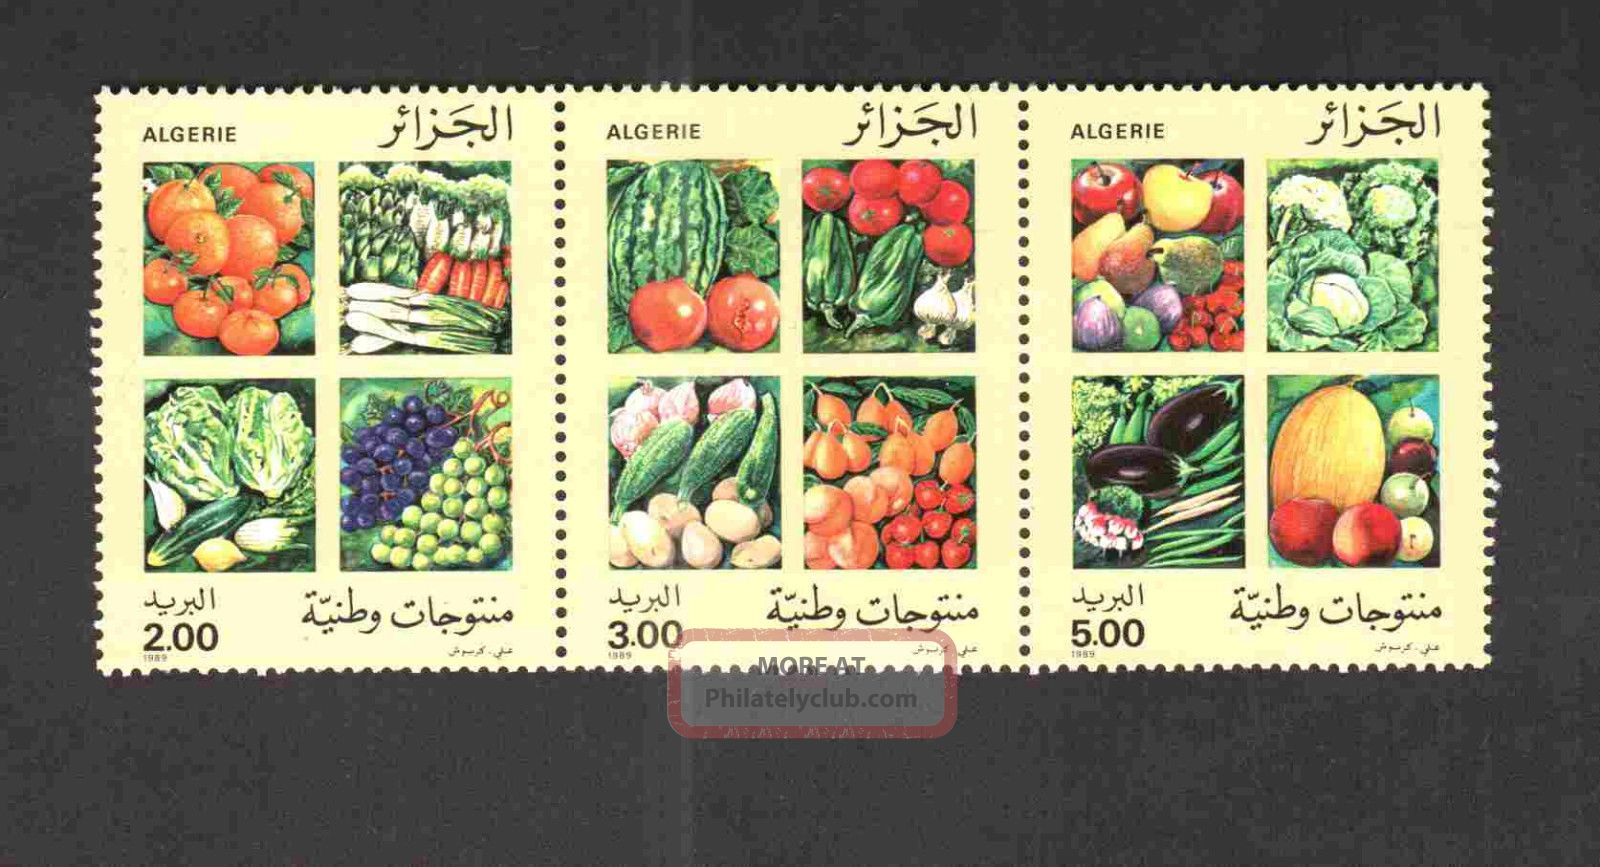 Algeria 1989 Vegetables & Fruits,  Scott 901a - C - Strip Of 03 - Topical Stamps photo